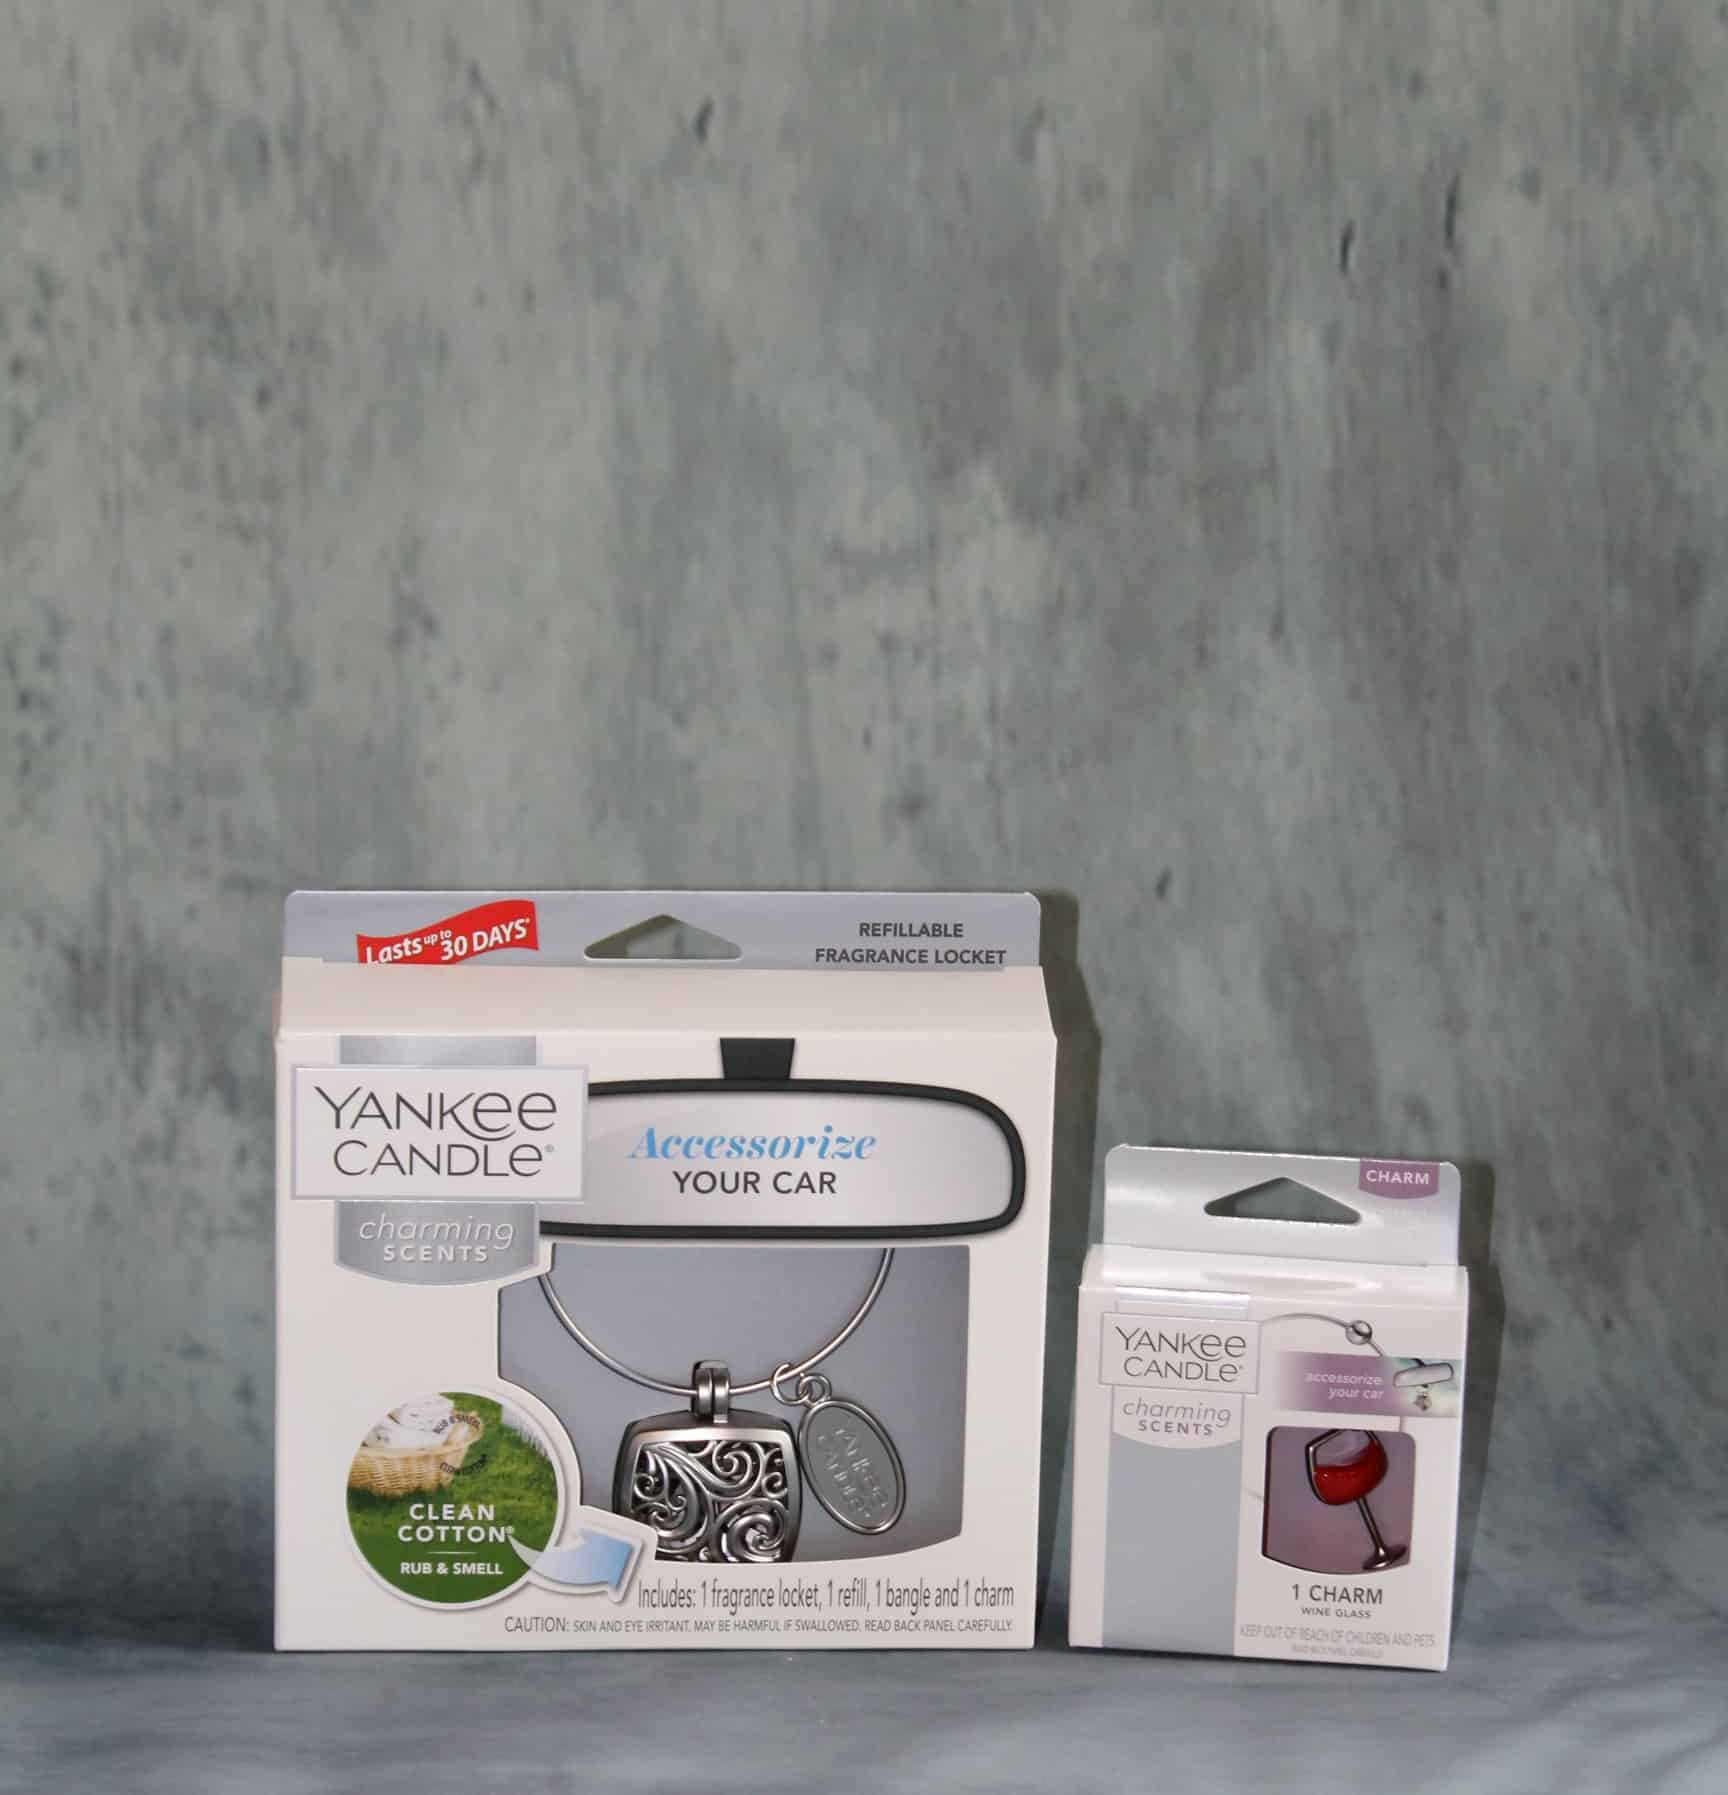 Charming Scents Yankee Candles are the Perfect Car Accessory